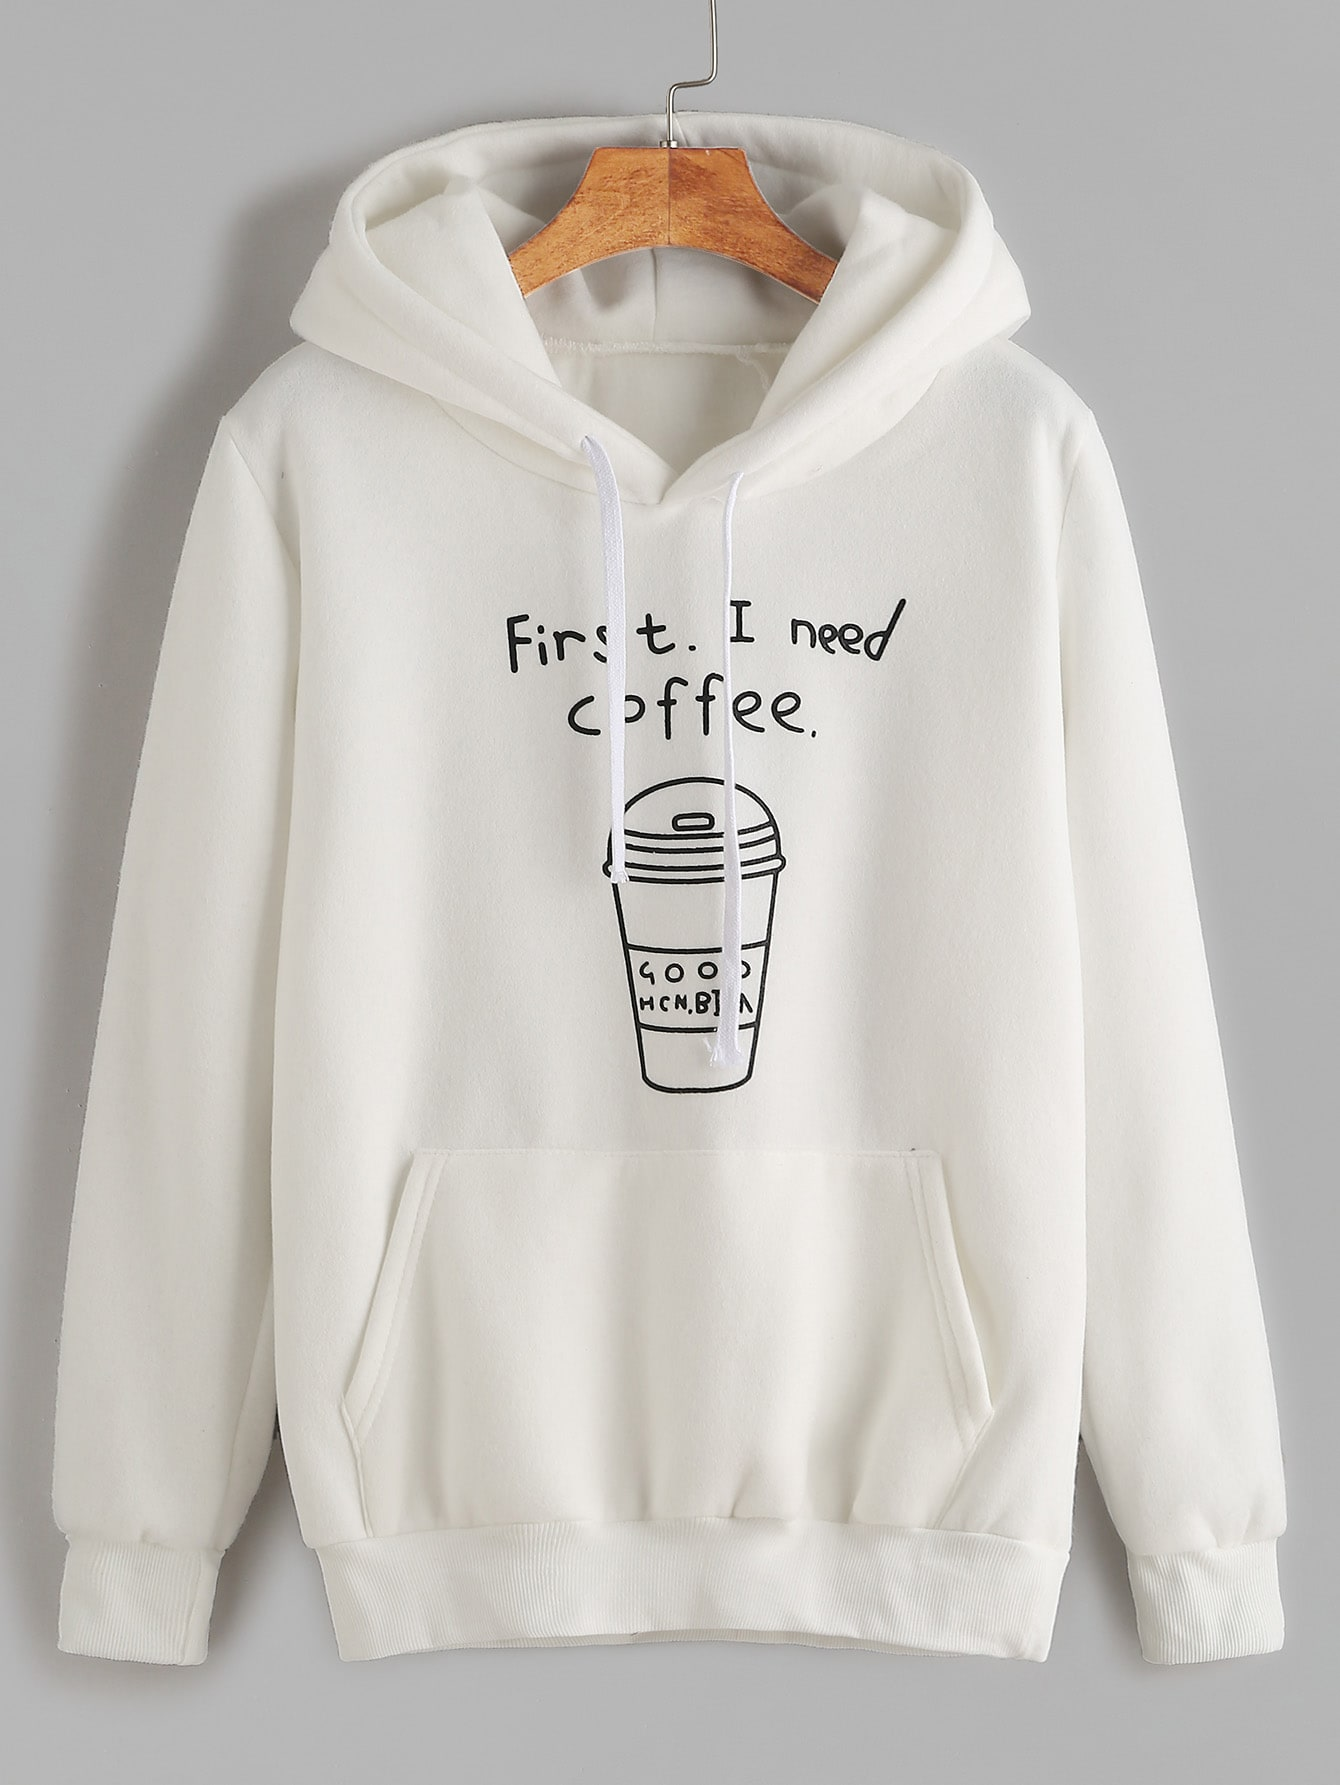 White Printed Hooded Sweatshirt With PocketWhite Printed Hooded Sweatshirt With Pocket<br><br>color: White<br>size: one-size